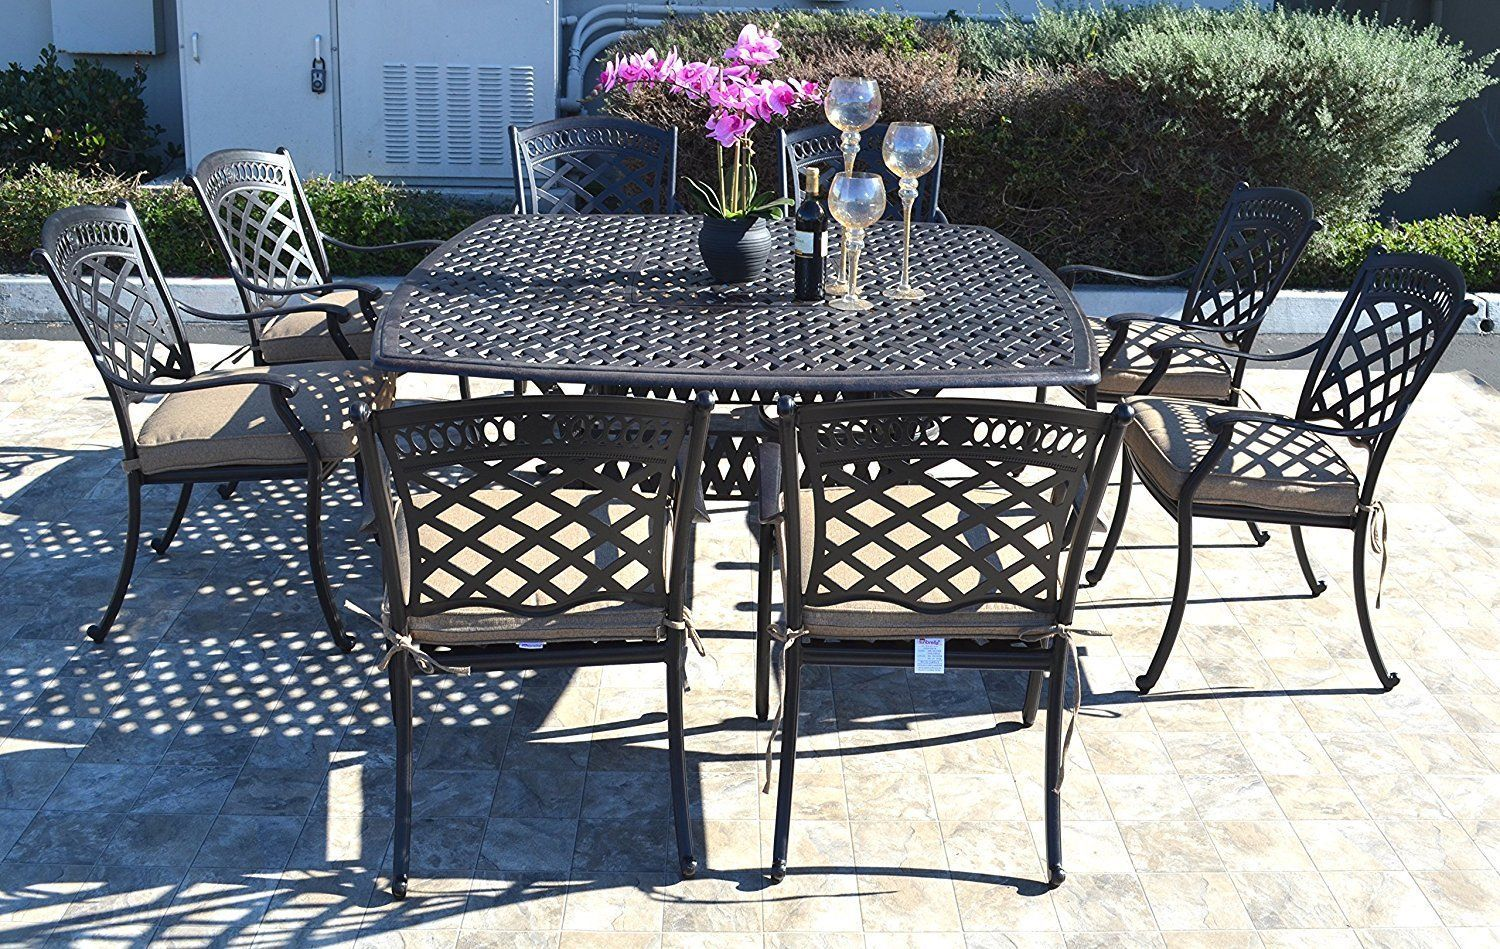 Cast aluminum patio dining set 9pc outdoor furniture square Nassau table 8 chair